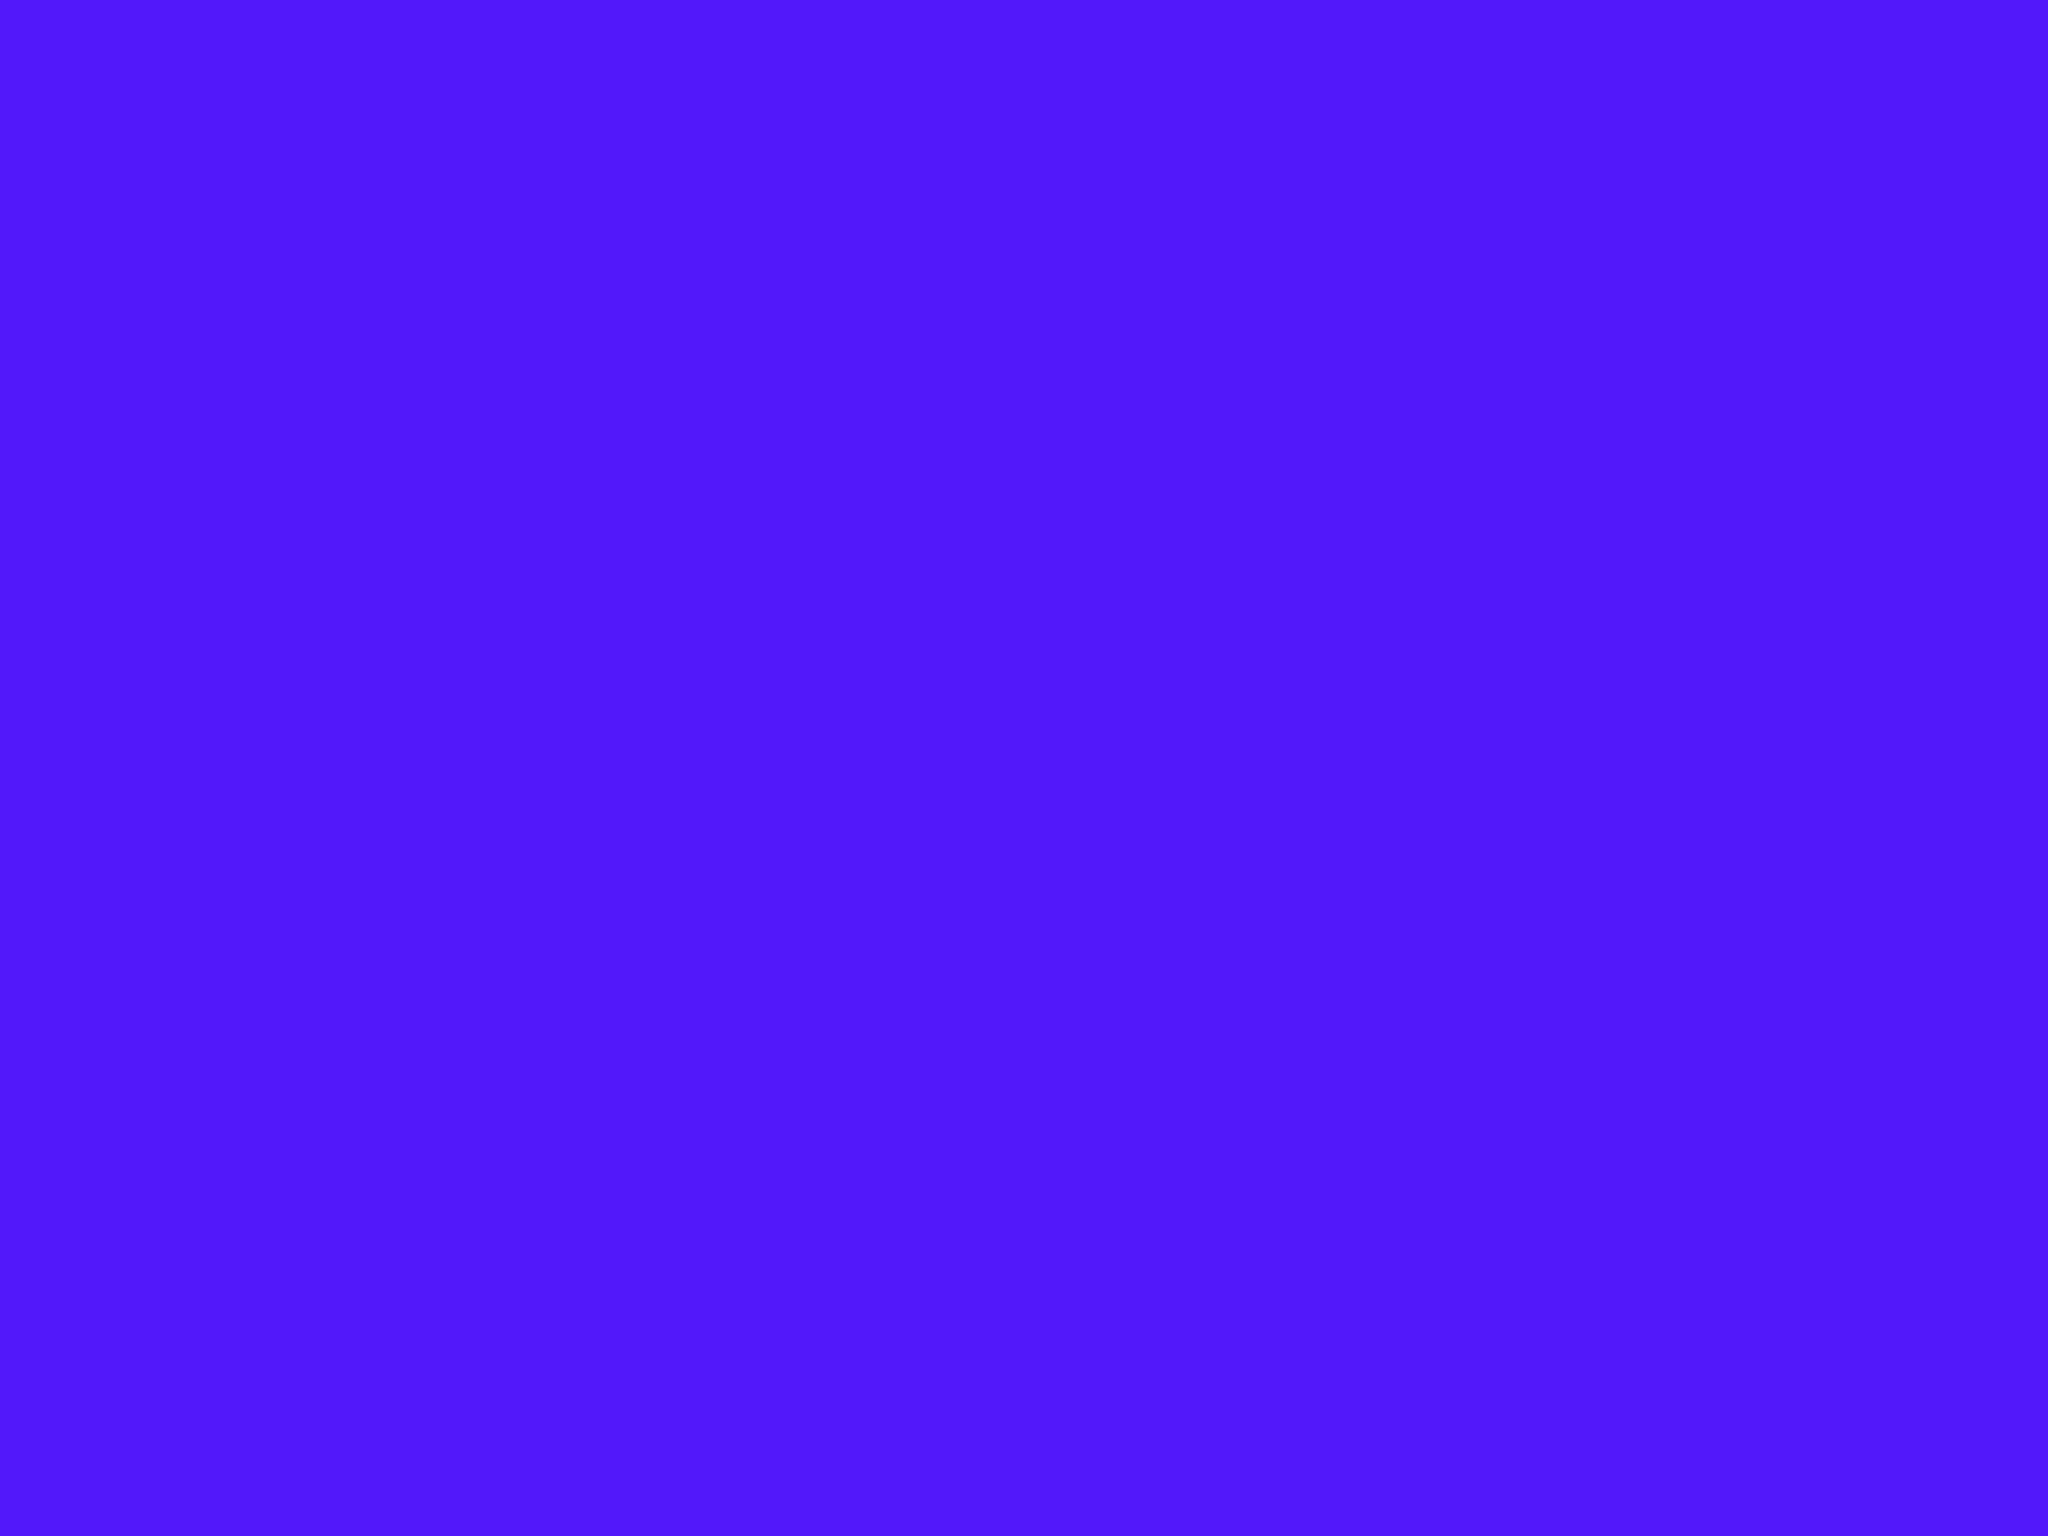 2048x1536 Han Purple Solid Color Background